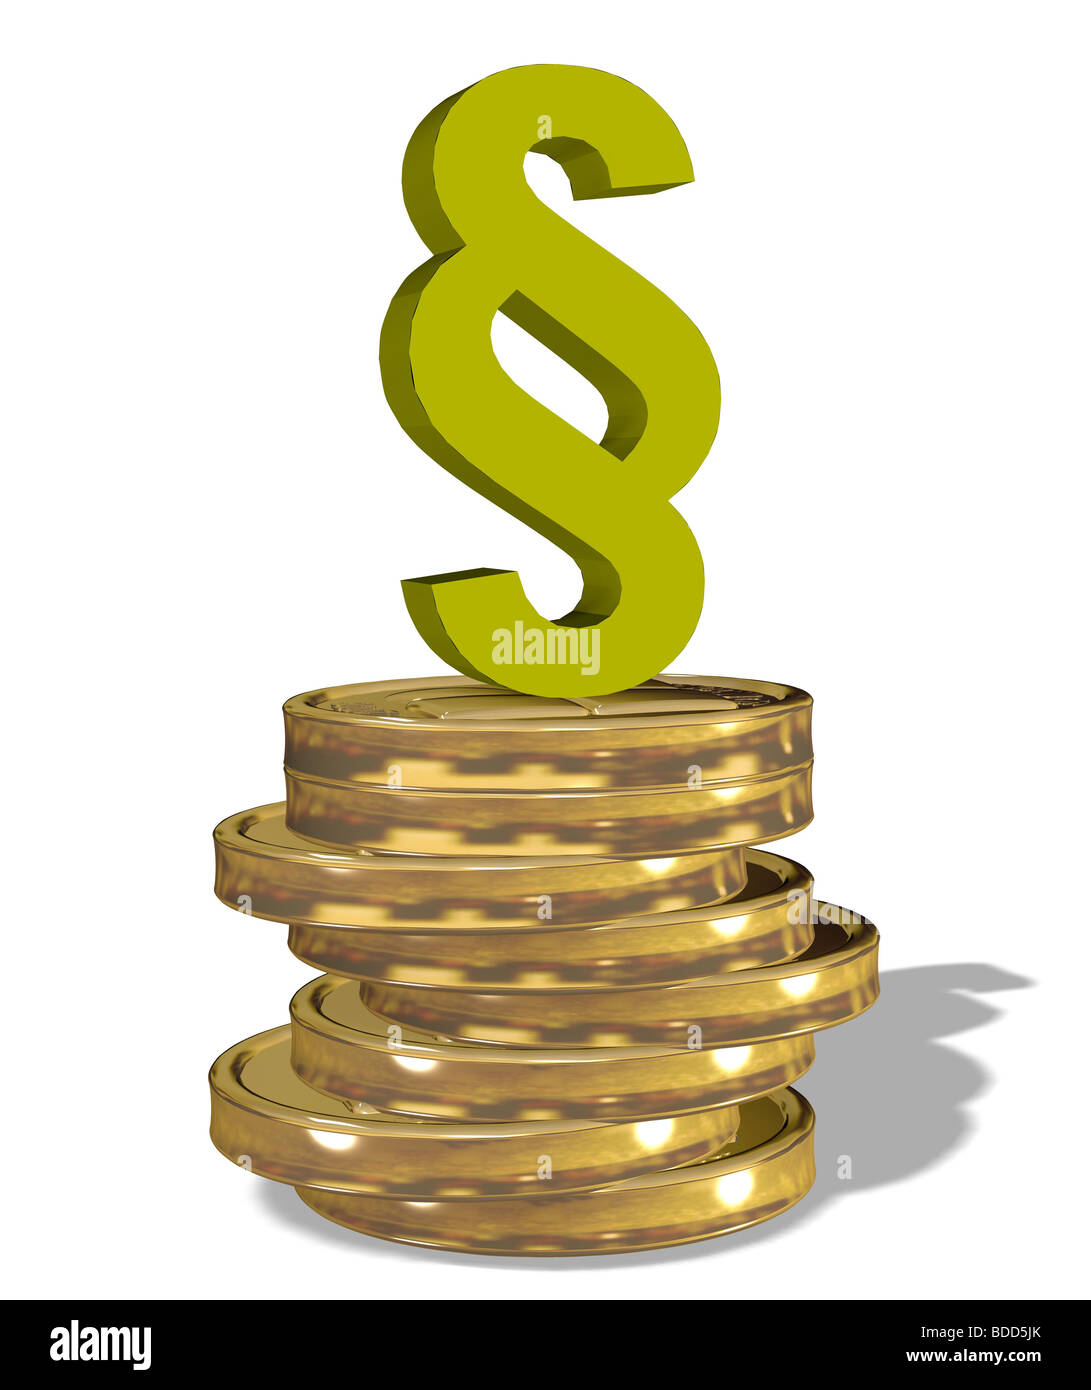 paragraph sign on a stack of coins - Stock Image